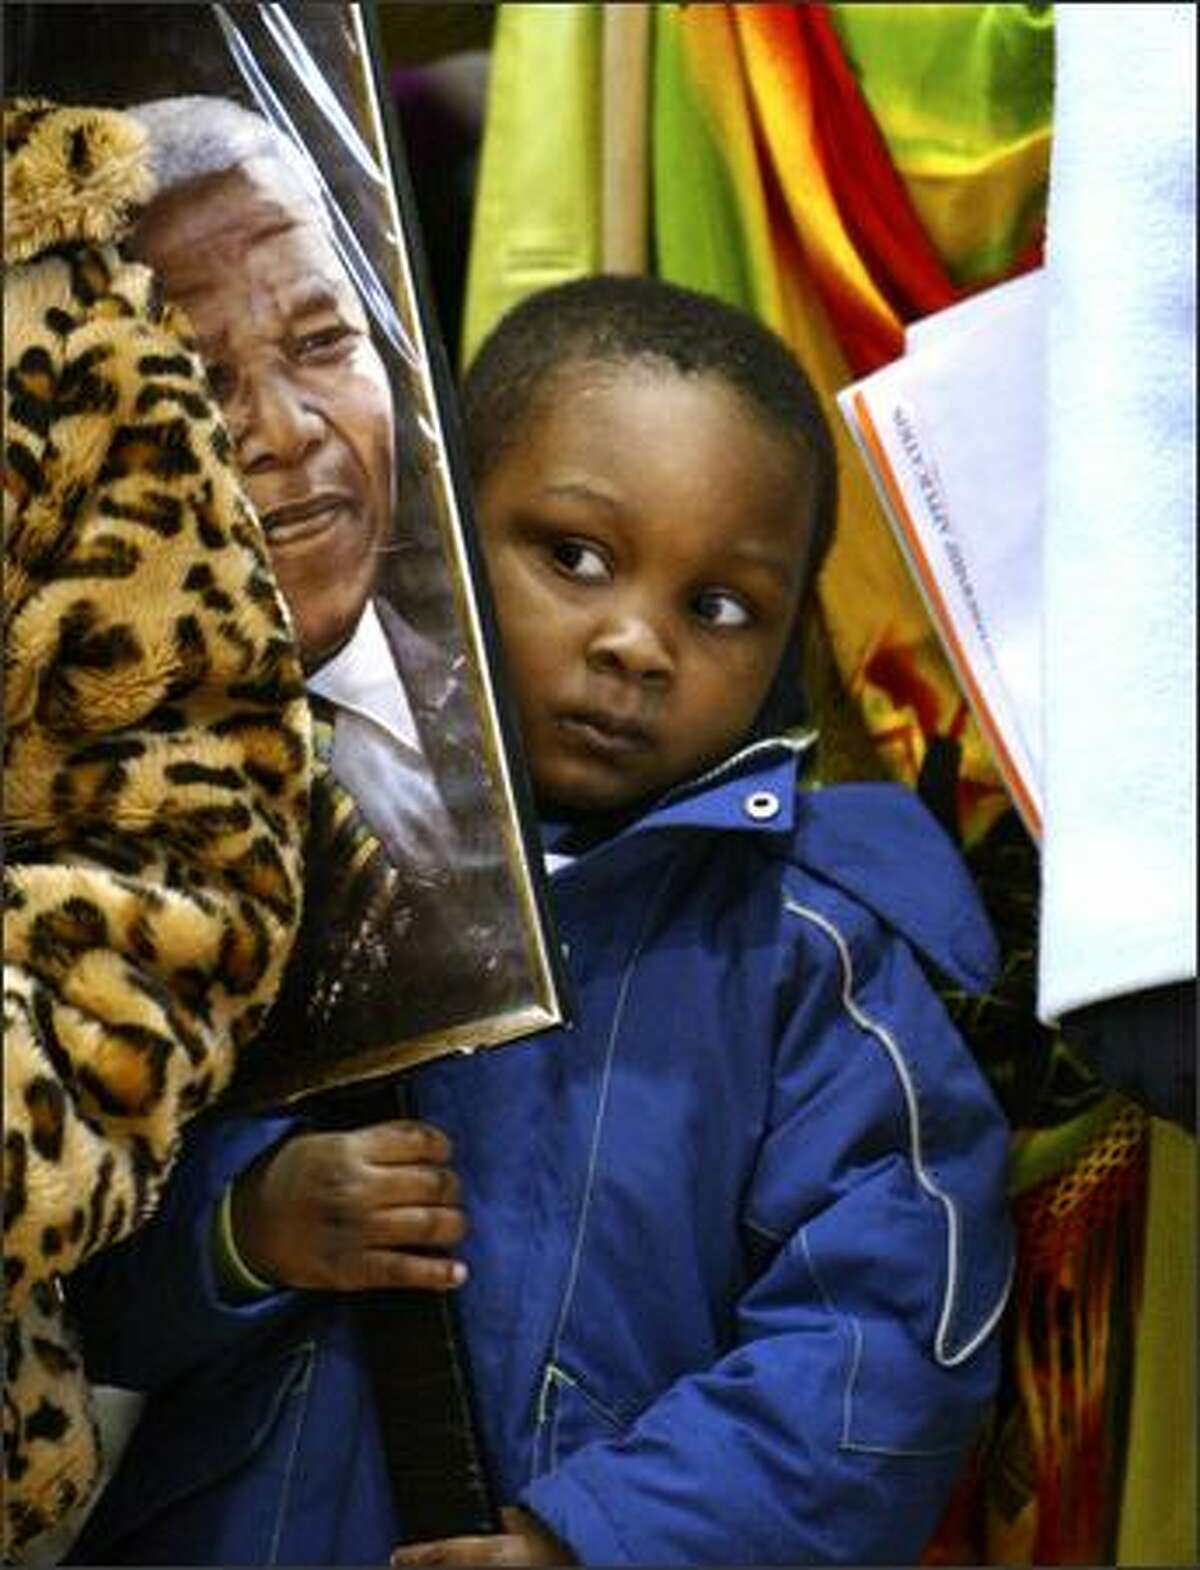 Davon Fuller holds a photo of Nelson Mandela as he squeezes in between his grandmother and older sister at the Franklin High School gym during the annual Martin Luther King Jr. Day celebration and march.Arias: Davon was just one of the hundreds who attended and later participated in the three-mile march that started at the high school and ended at Martin Luther King Jr. Park.